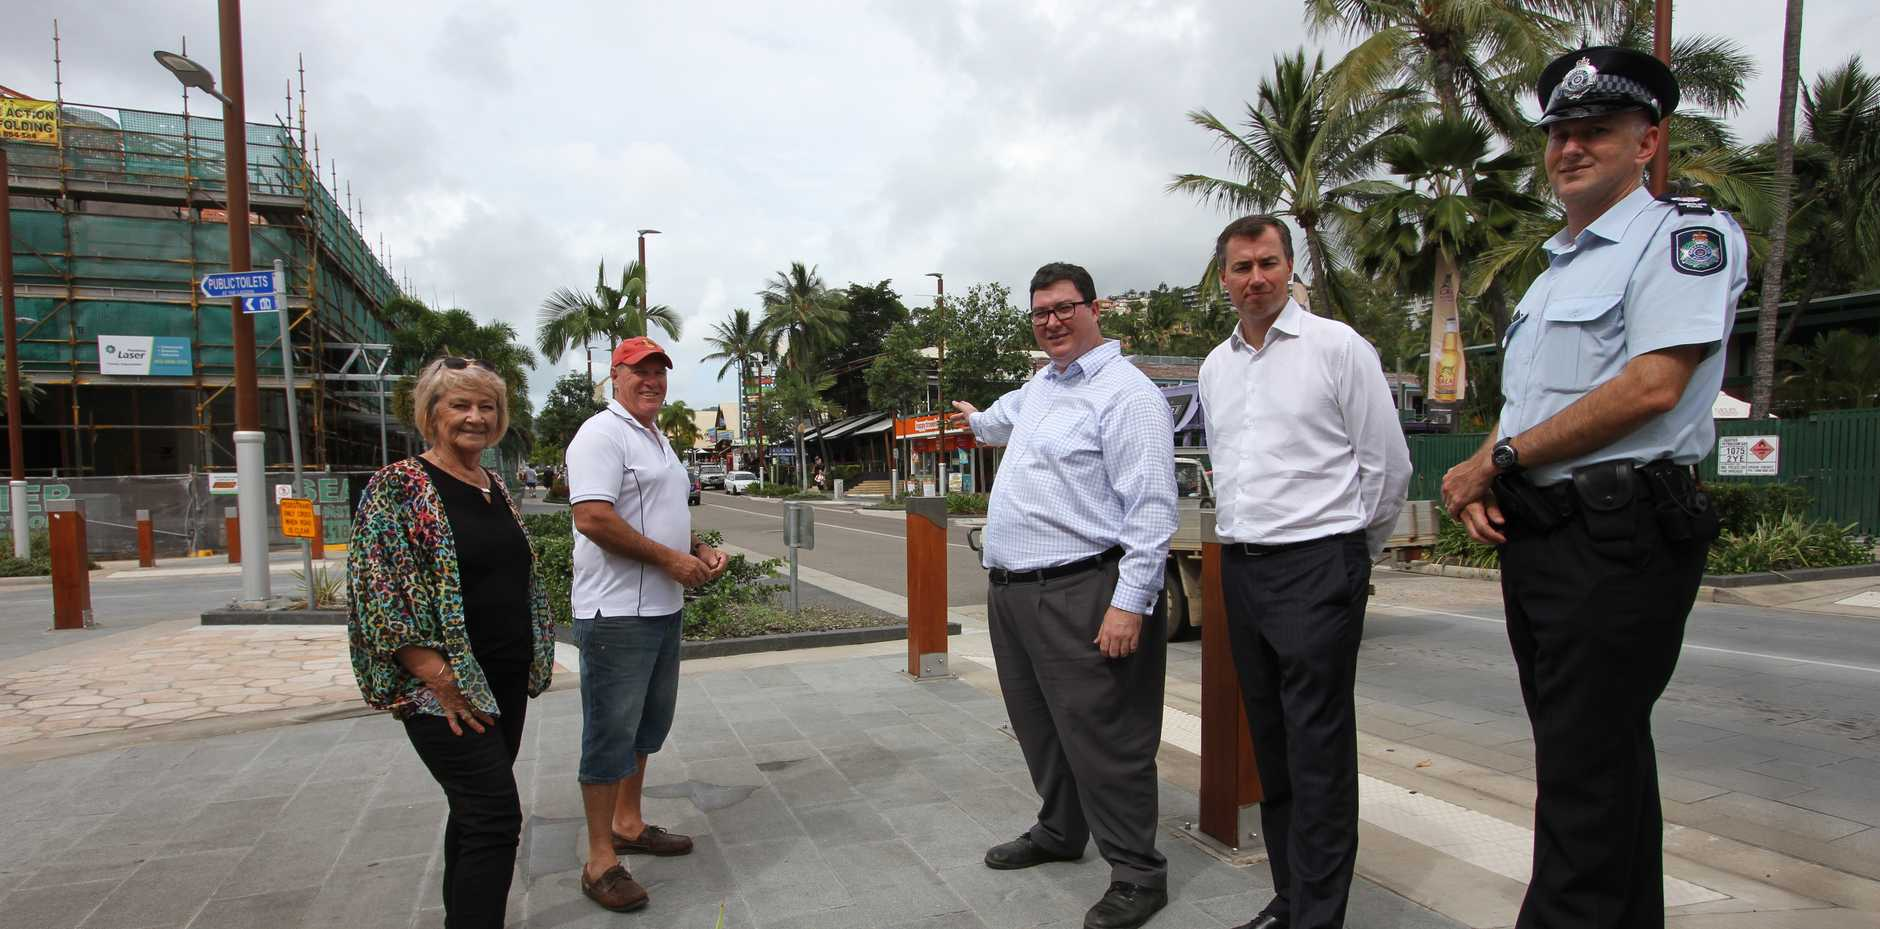 ON WATCH: Airlie Beach Councillor Jan Clifford, Whitsunday Coast Chamber of Commerce President Kevin Collins, Federal MP George Christensen, Minister for Justice Micheal Keenan and Officer in Charge of Whitsunday Police Senior Sergeant Nathan Blain surveying the main street where 52 of the 84 CCTV cameras will be installed.  Photo Sharon Smallwood / Whitsunday Times